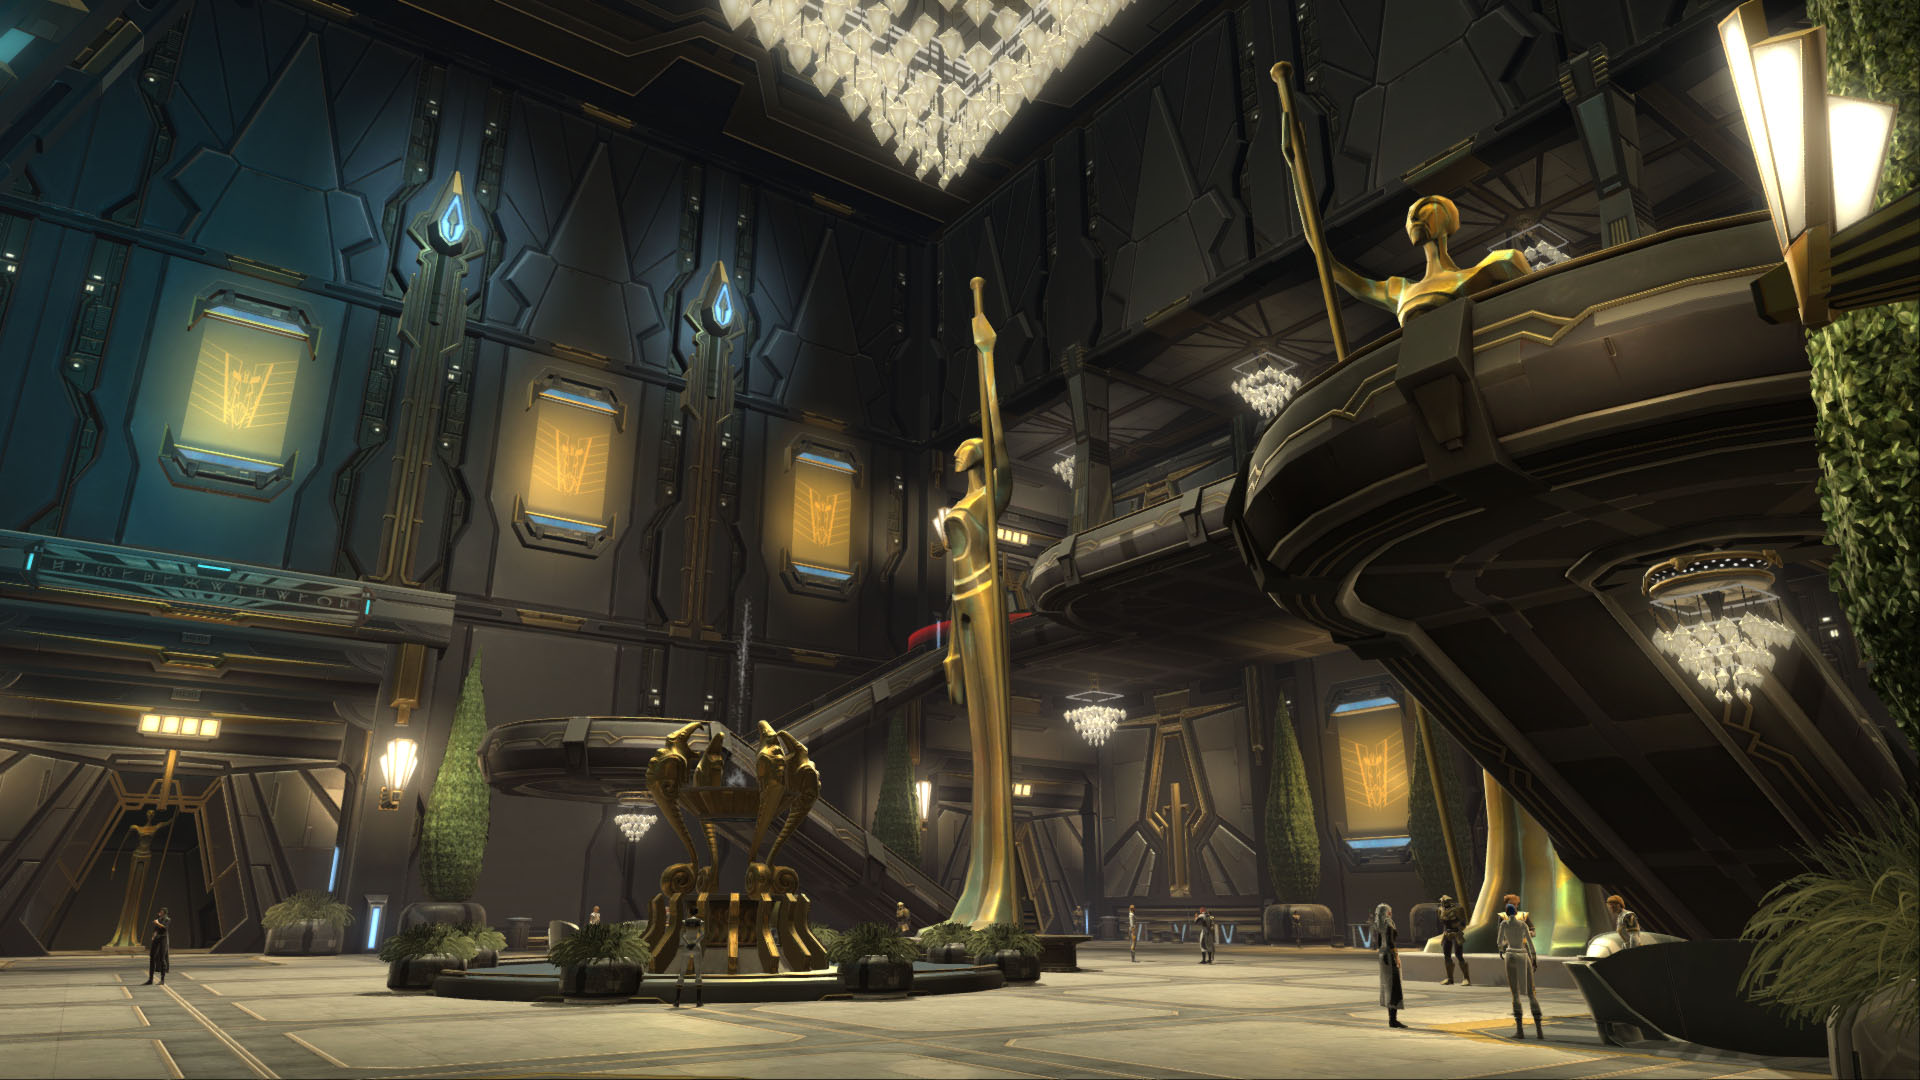 SWTOR screenshot of the interior of the Palace of the Eternal Dragon, showing a tall hall with two golden high statues, a fountain and a chandellier of many diamonds